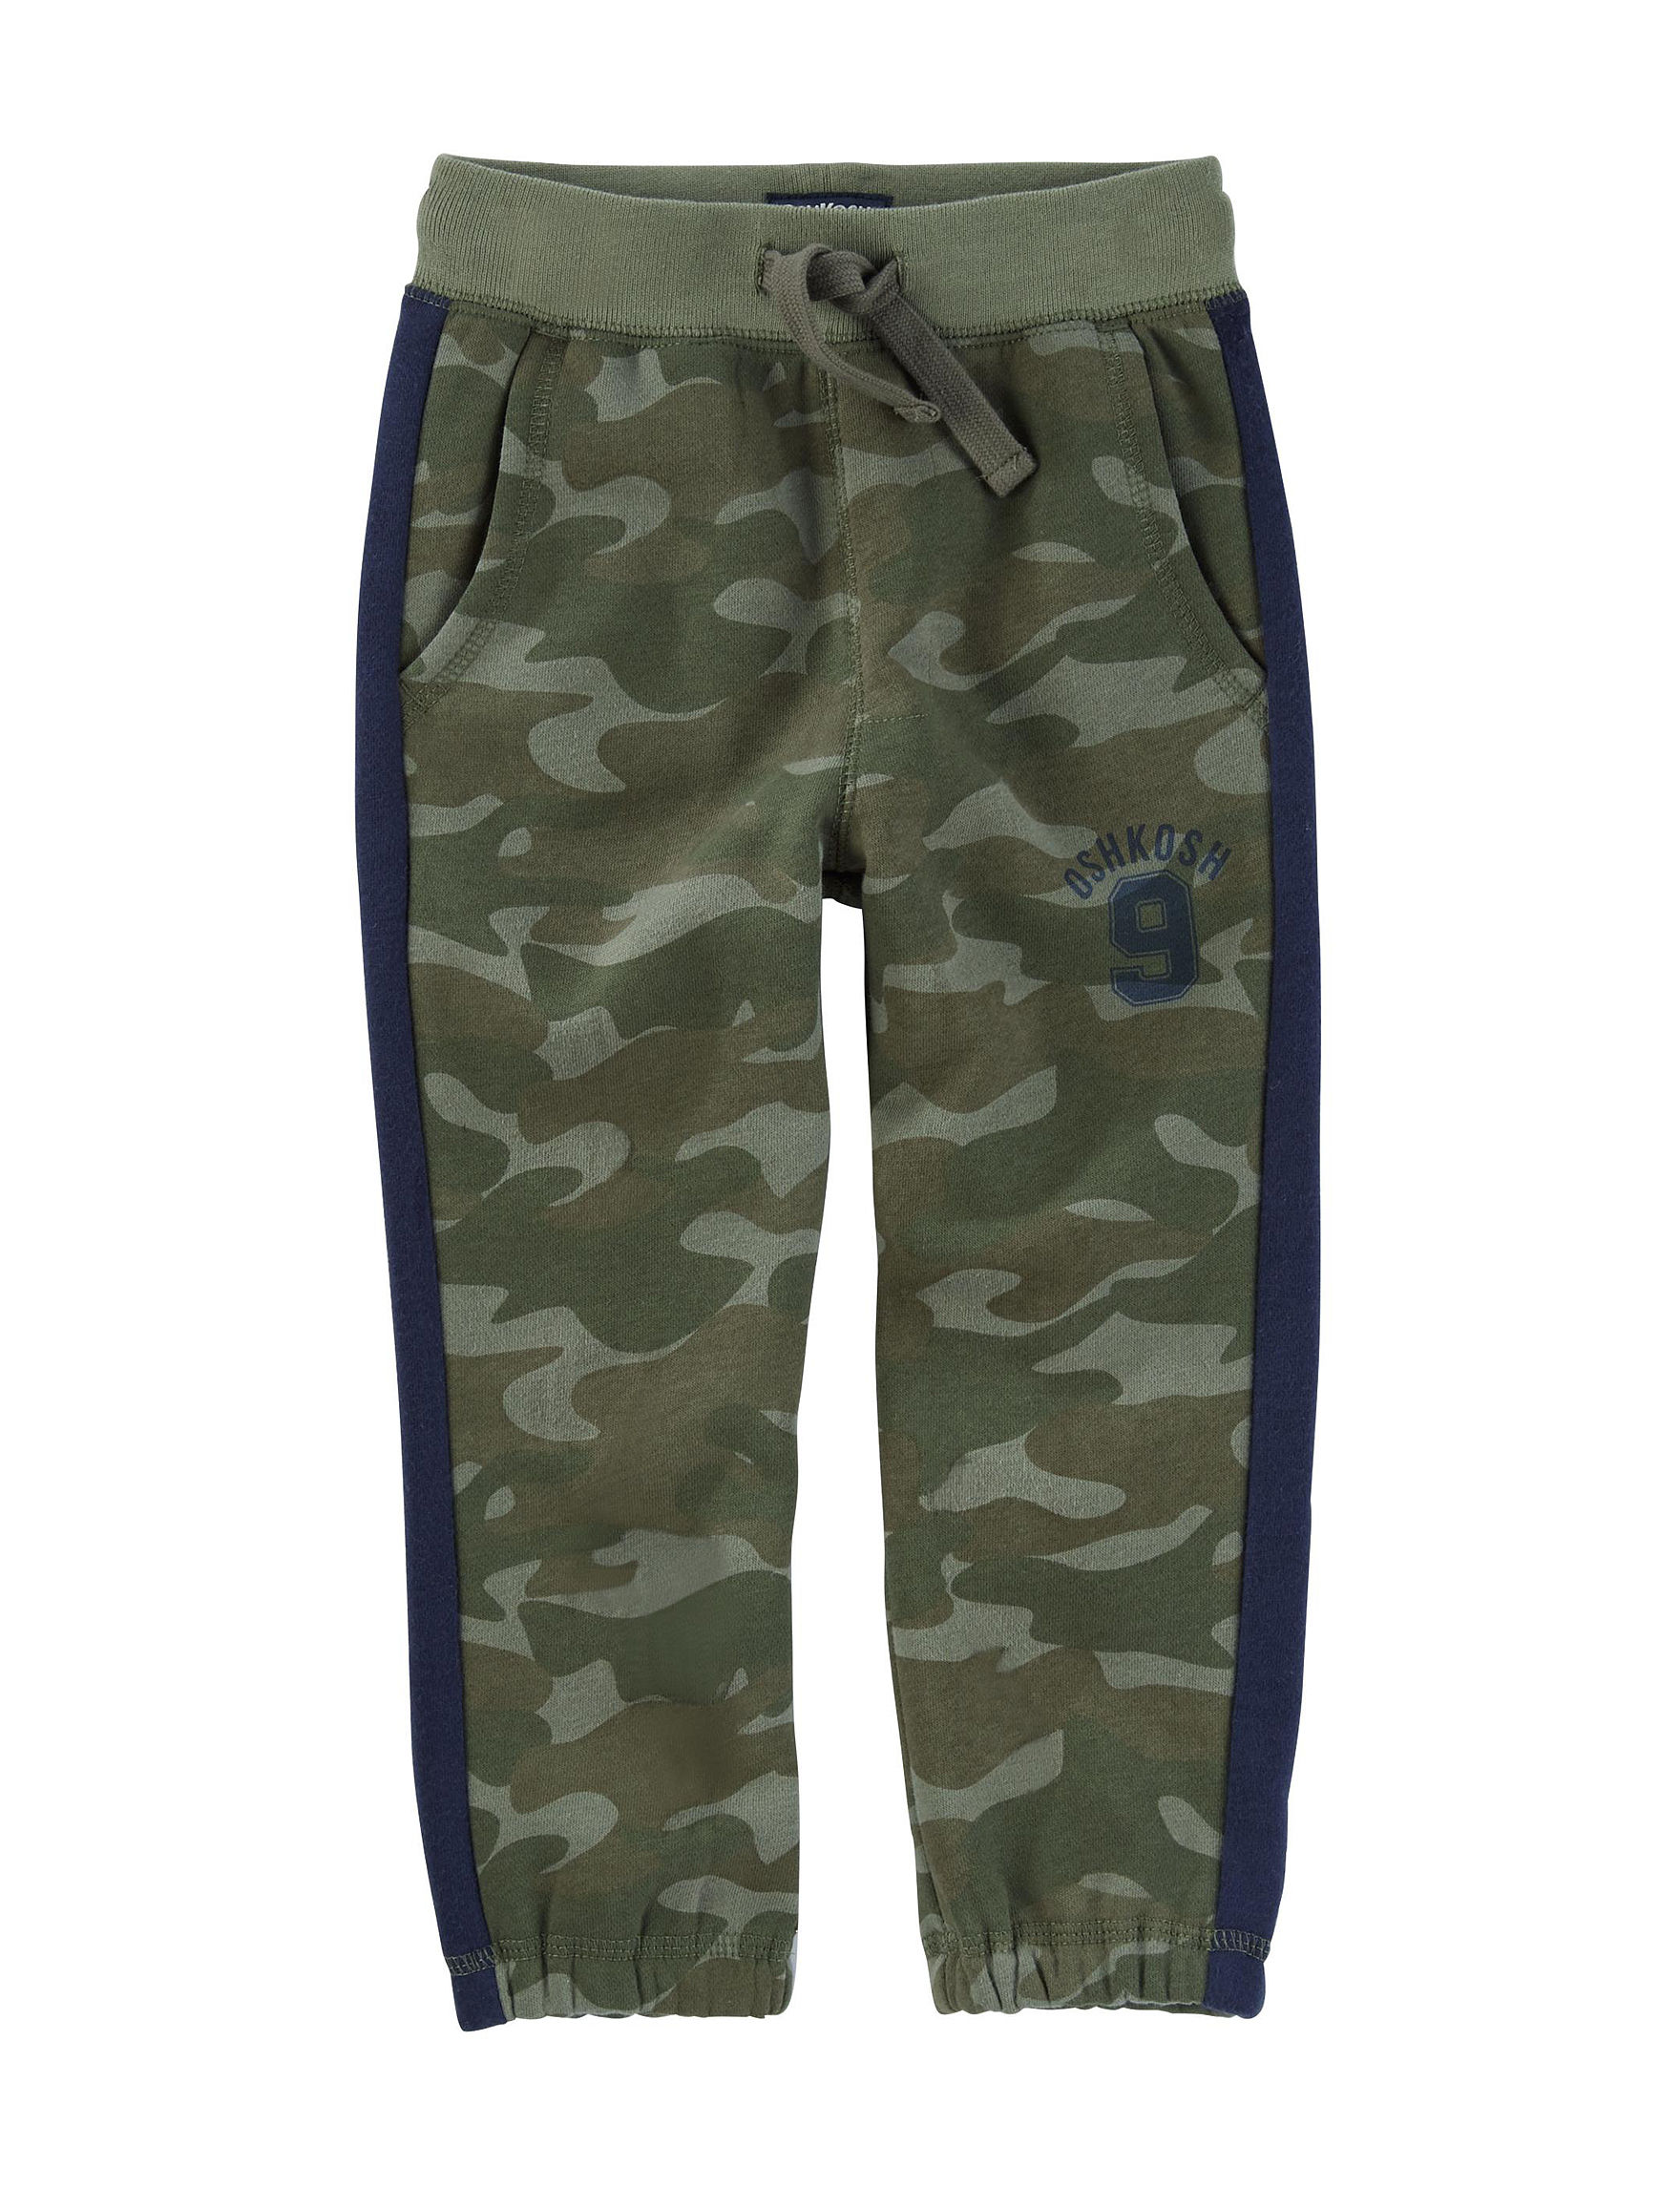 Oshkosh B'Gosh Multi Soft Pants